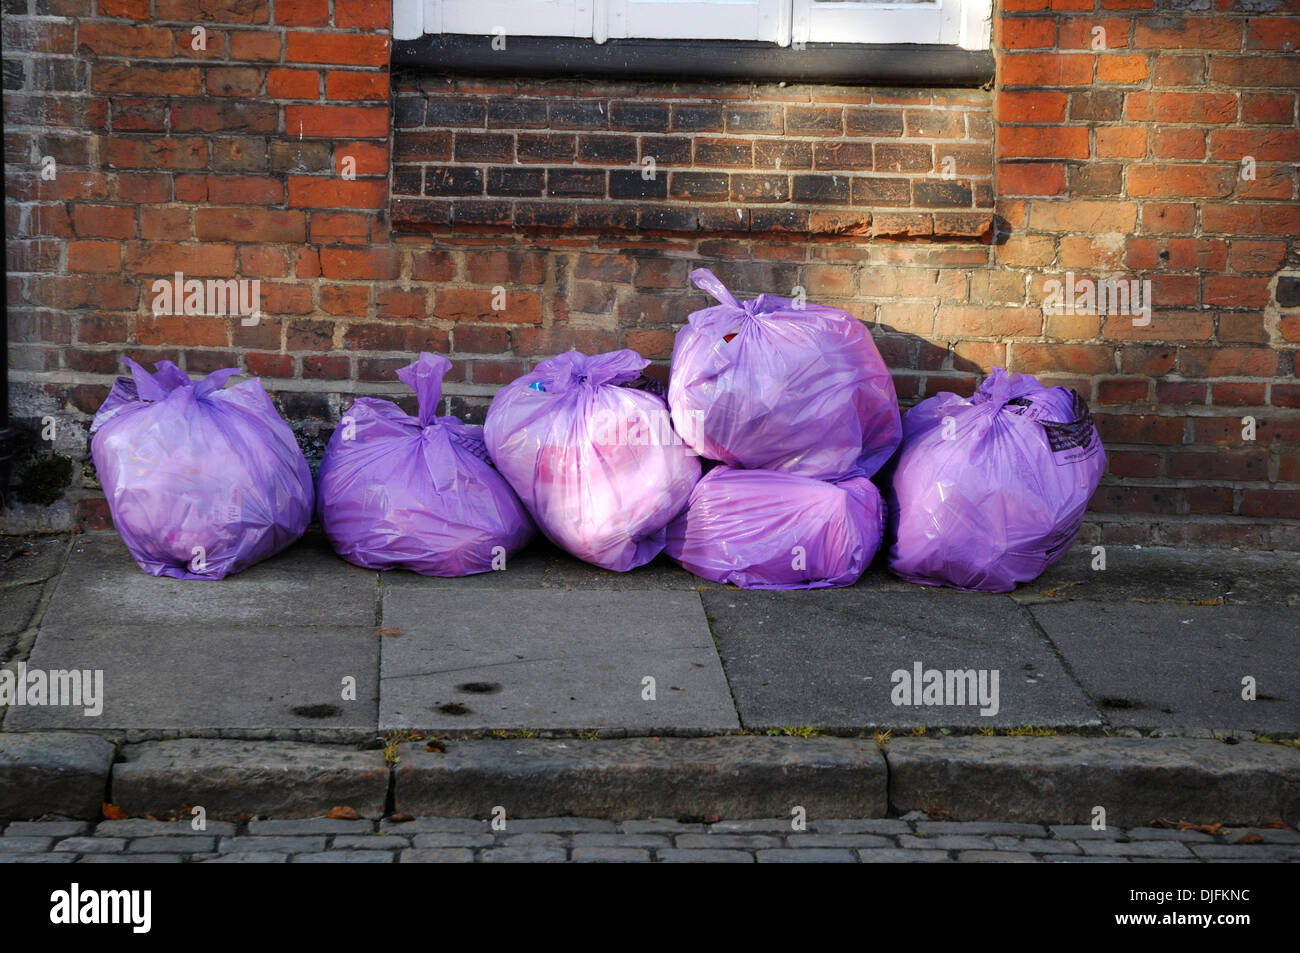 Rubbish bags left on pavement - Stock Image